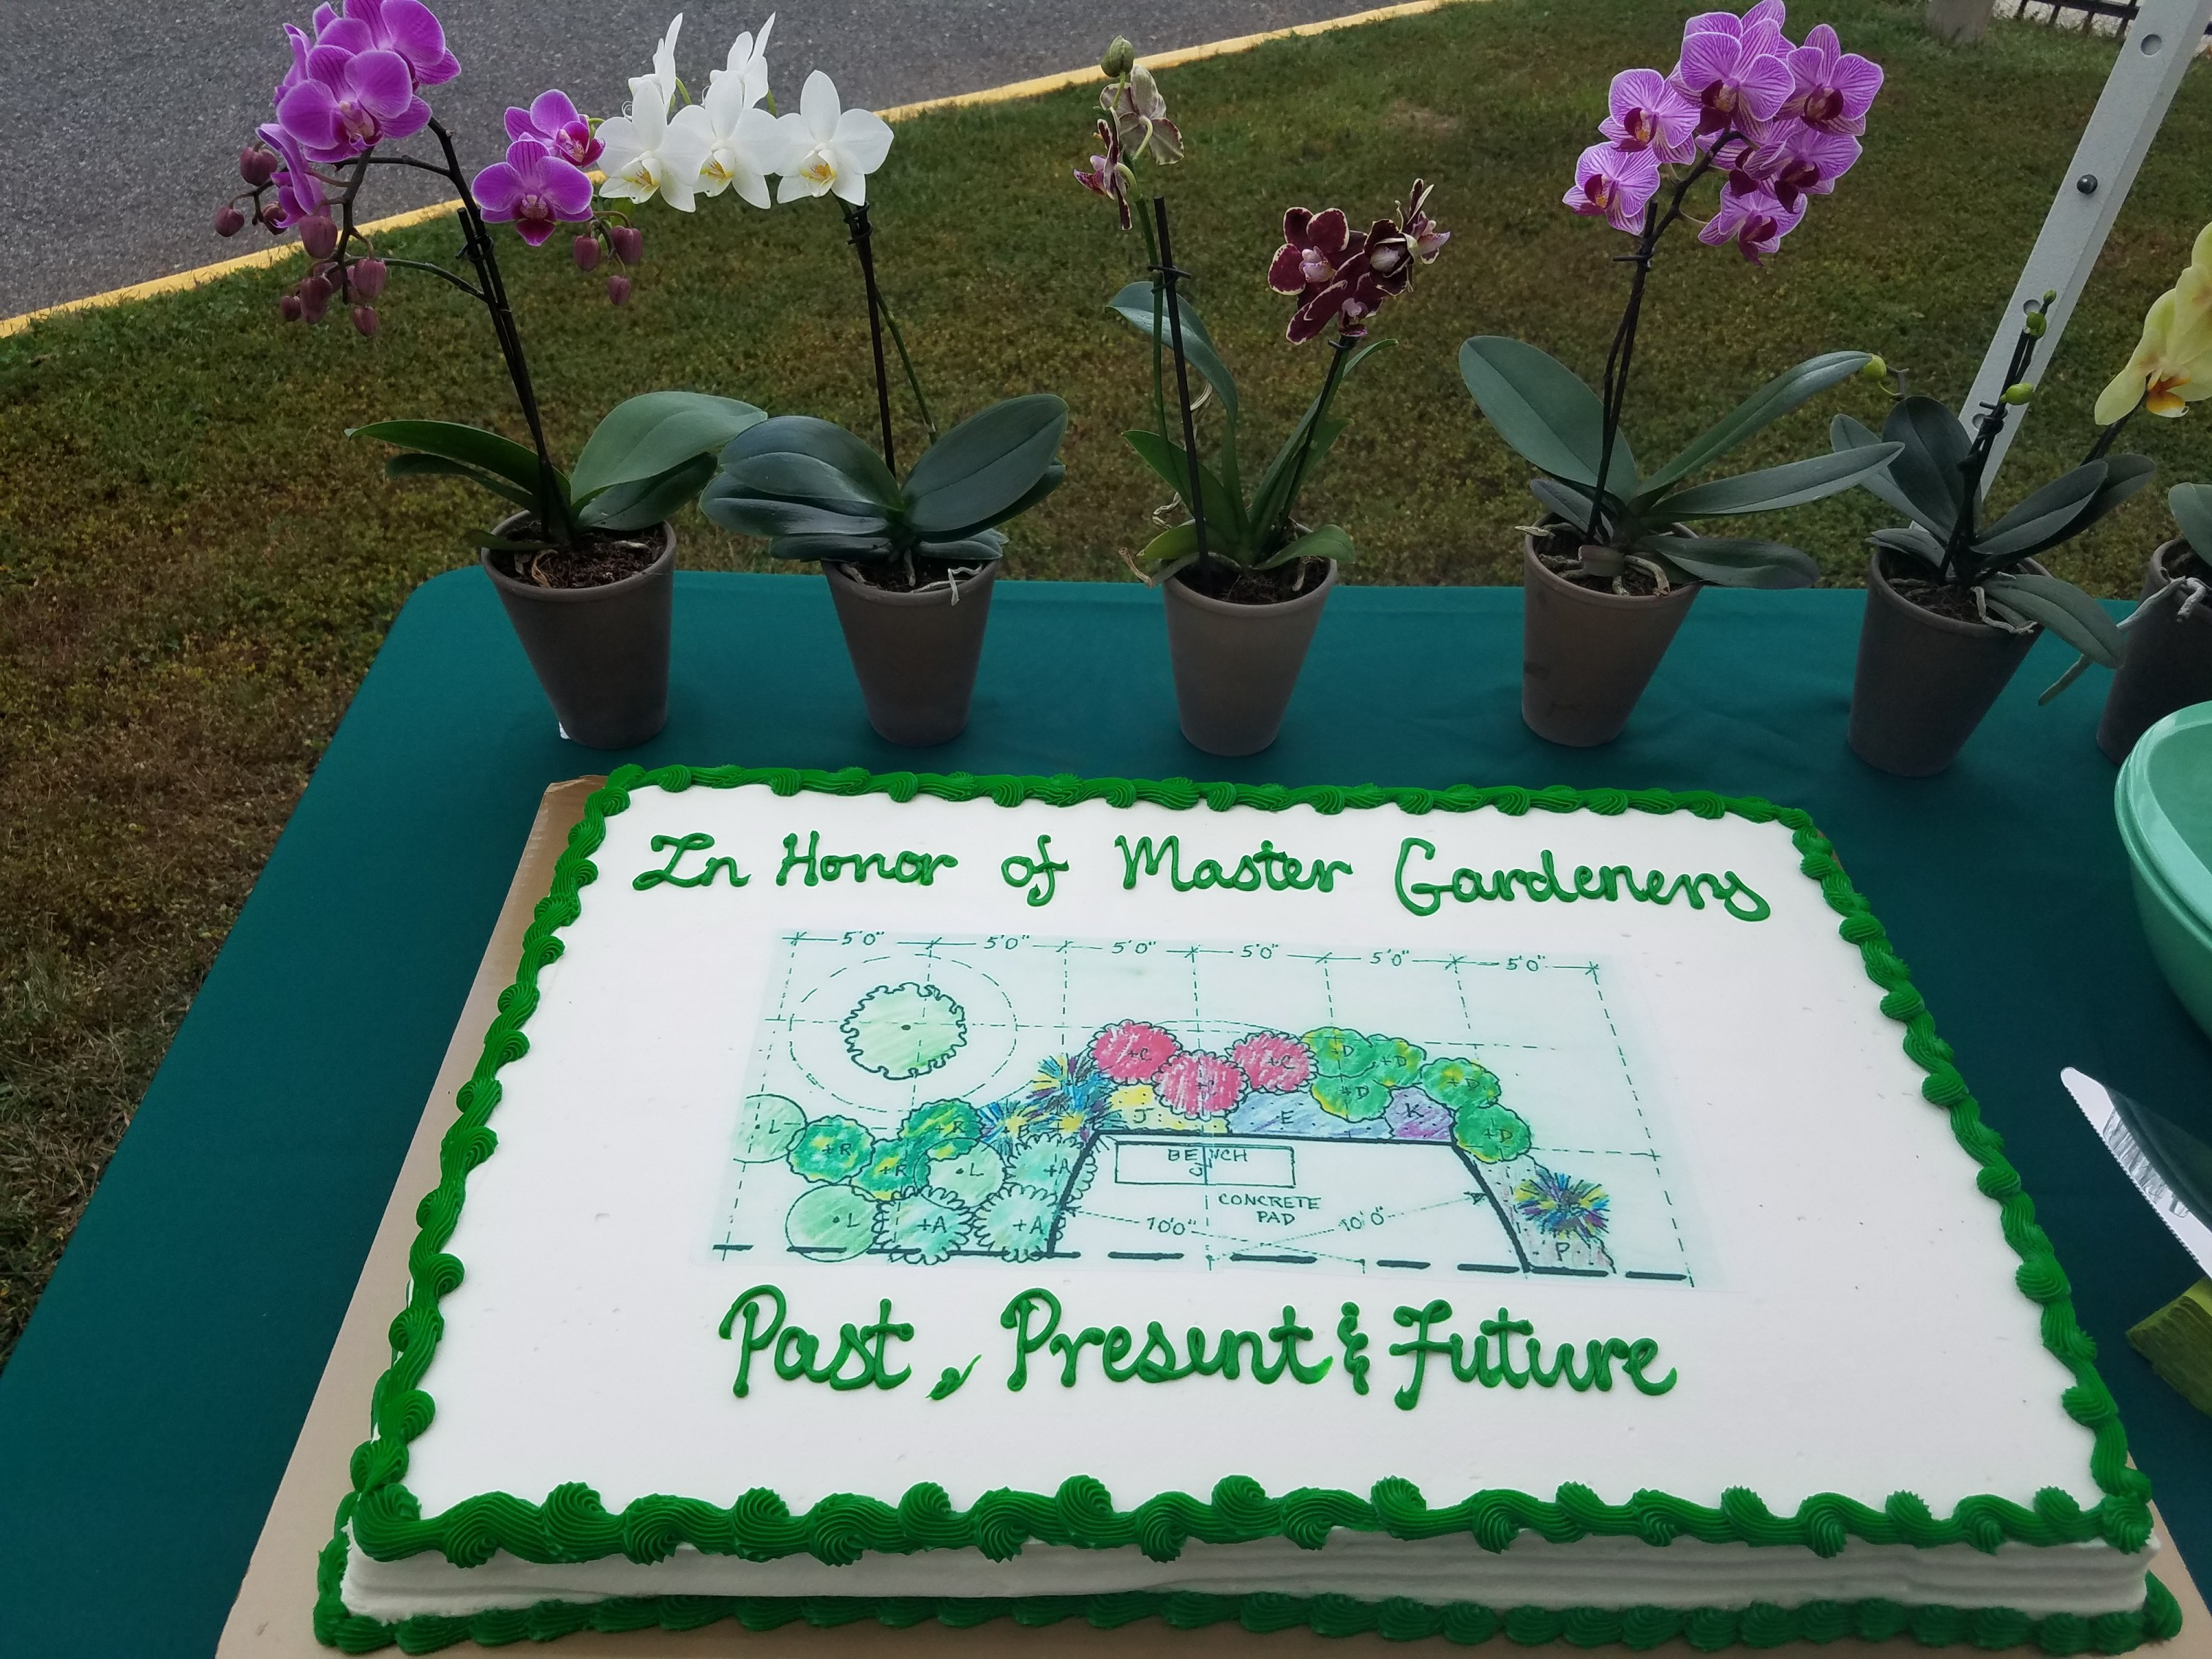 Sheet cake with garden plan on refreshments table